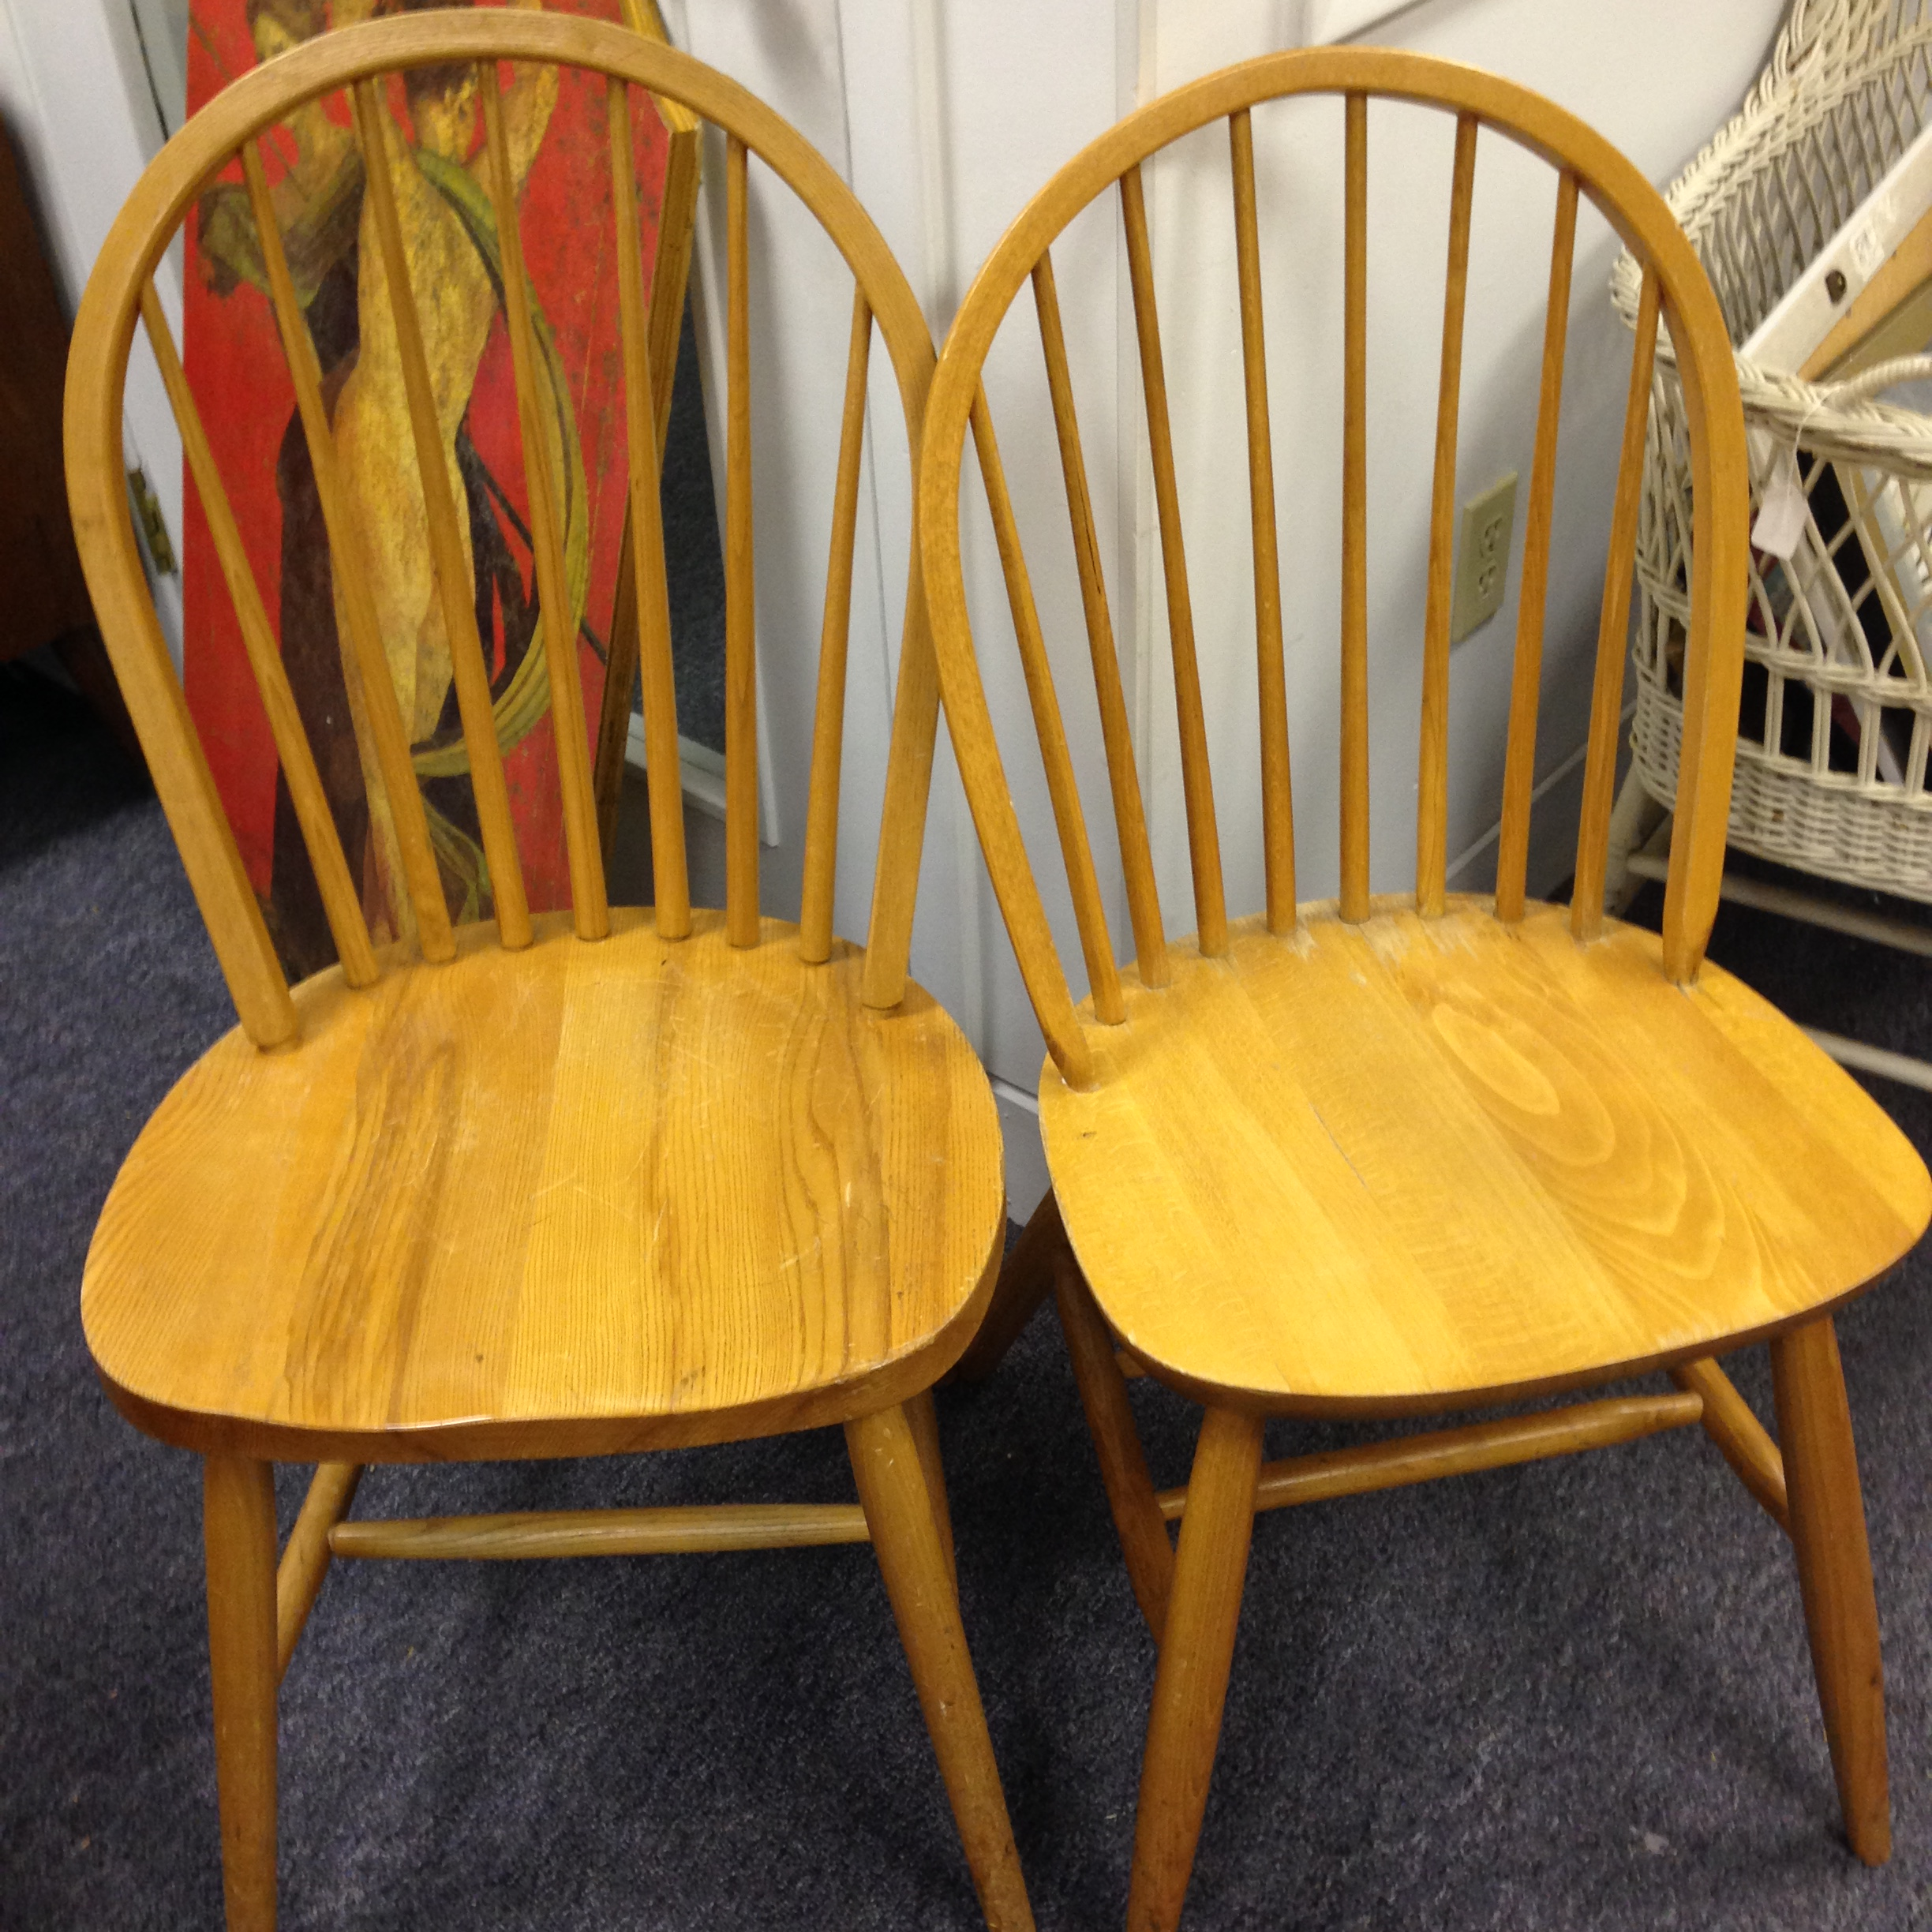 SOLD Windsor Chairs – Probably Oak